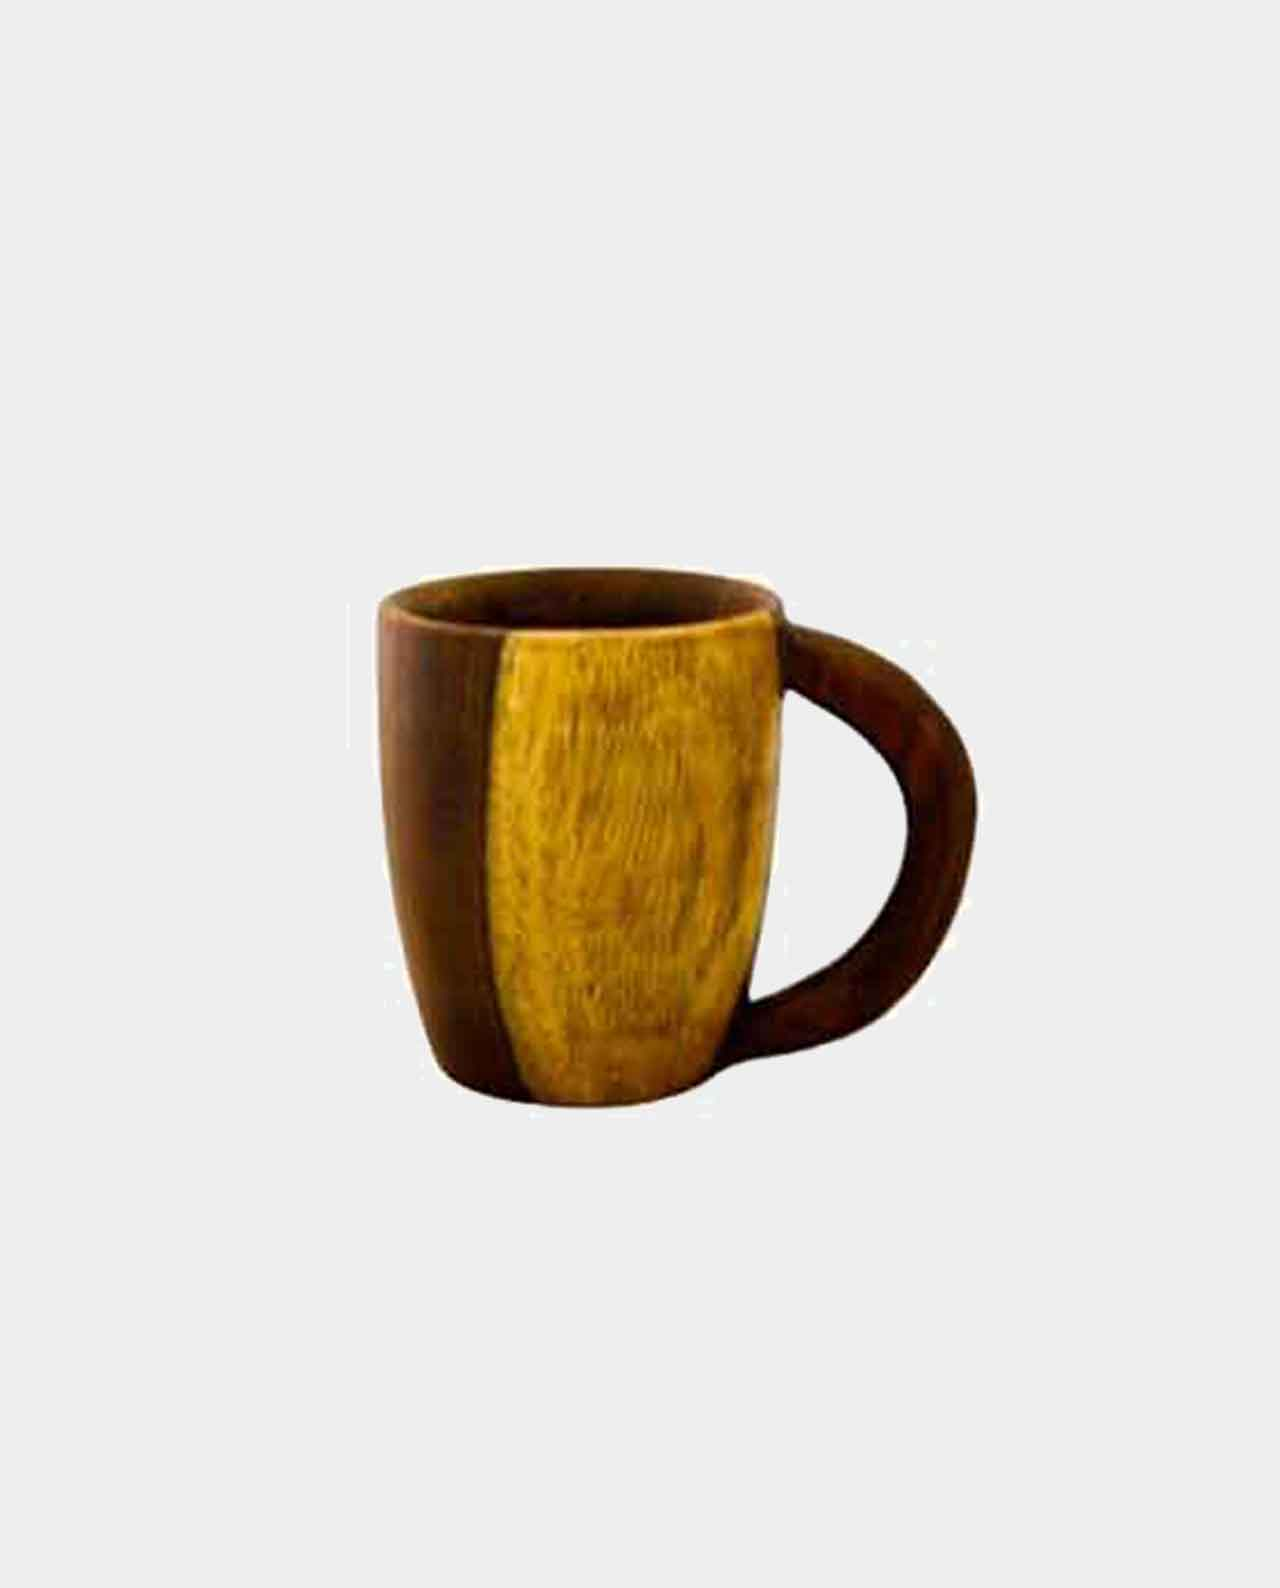 Cup Handmade of Asersus with the original texture and color of the tree trunk